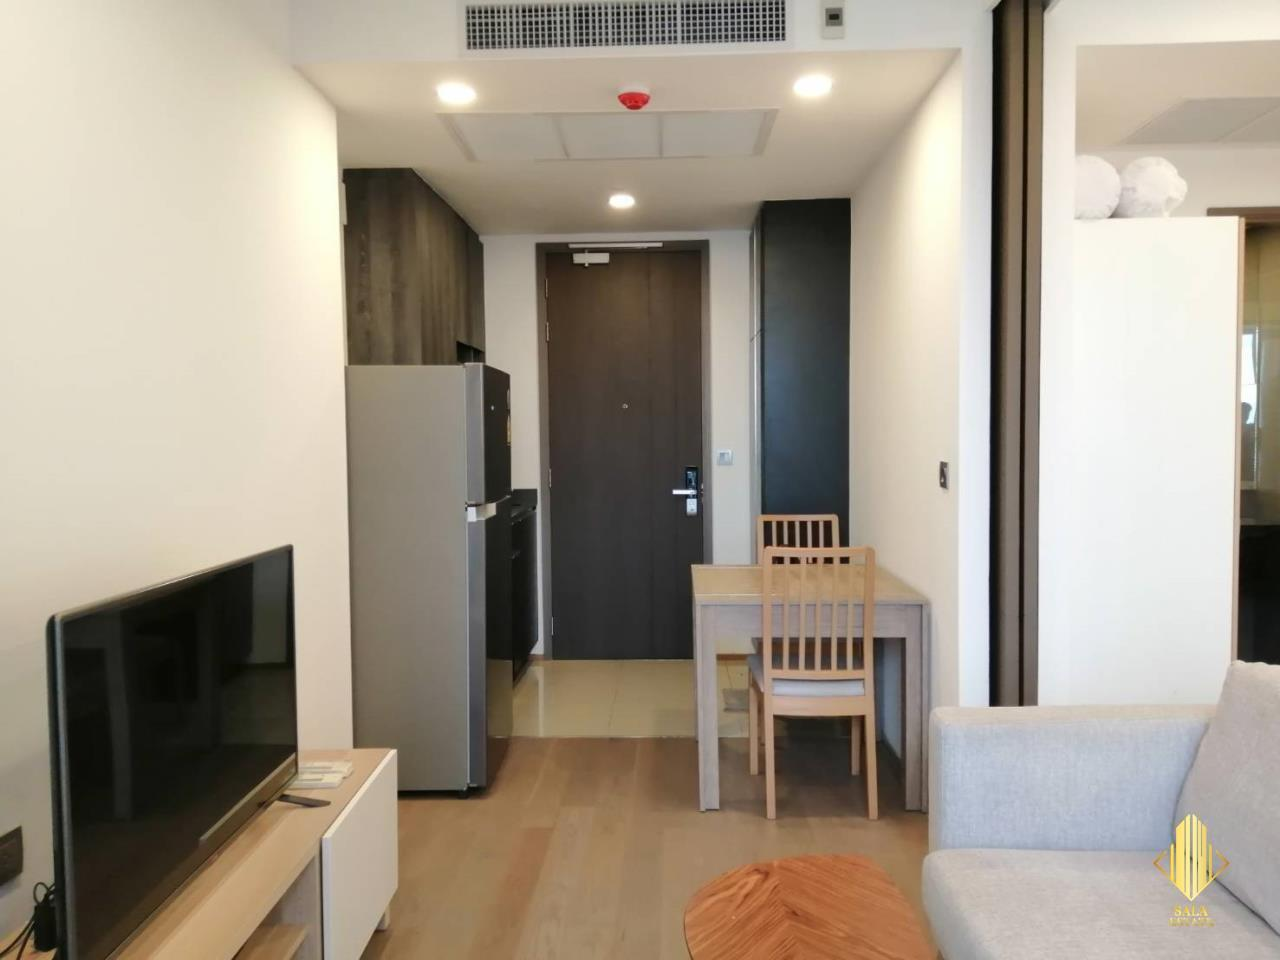 SALA ESTATE Agency's ( FOR RENT ) ASHTON CHULA SILOM – MRT SAMYAN, 40 SQM 1 BEDROOM 1 BEDROOM, FULLY FURNISHED, HIGH FLOOR 2